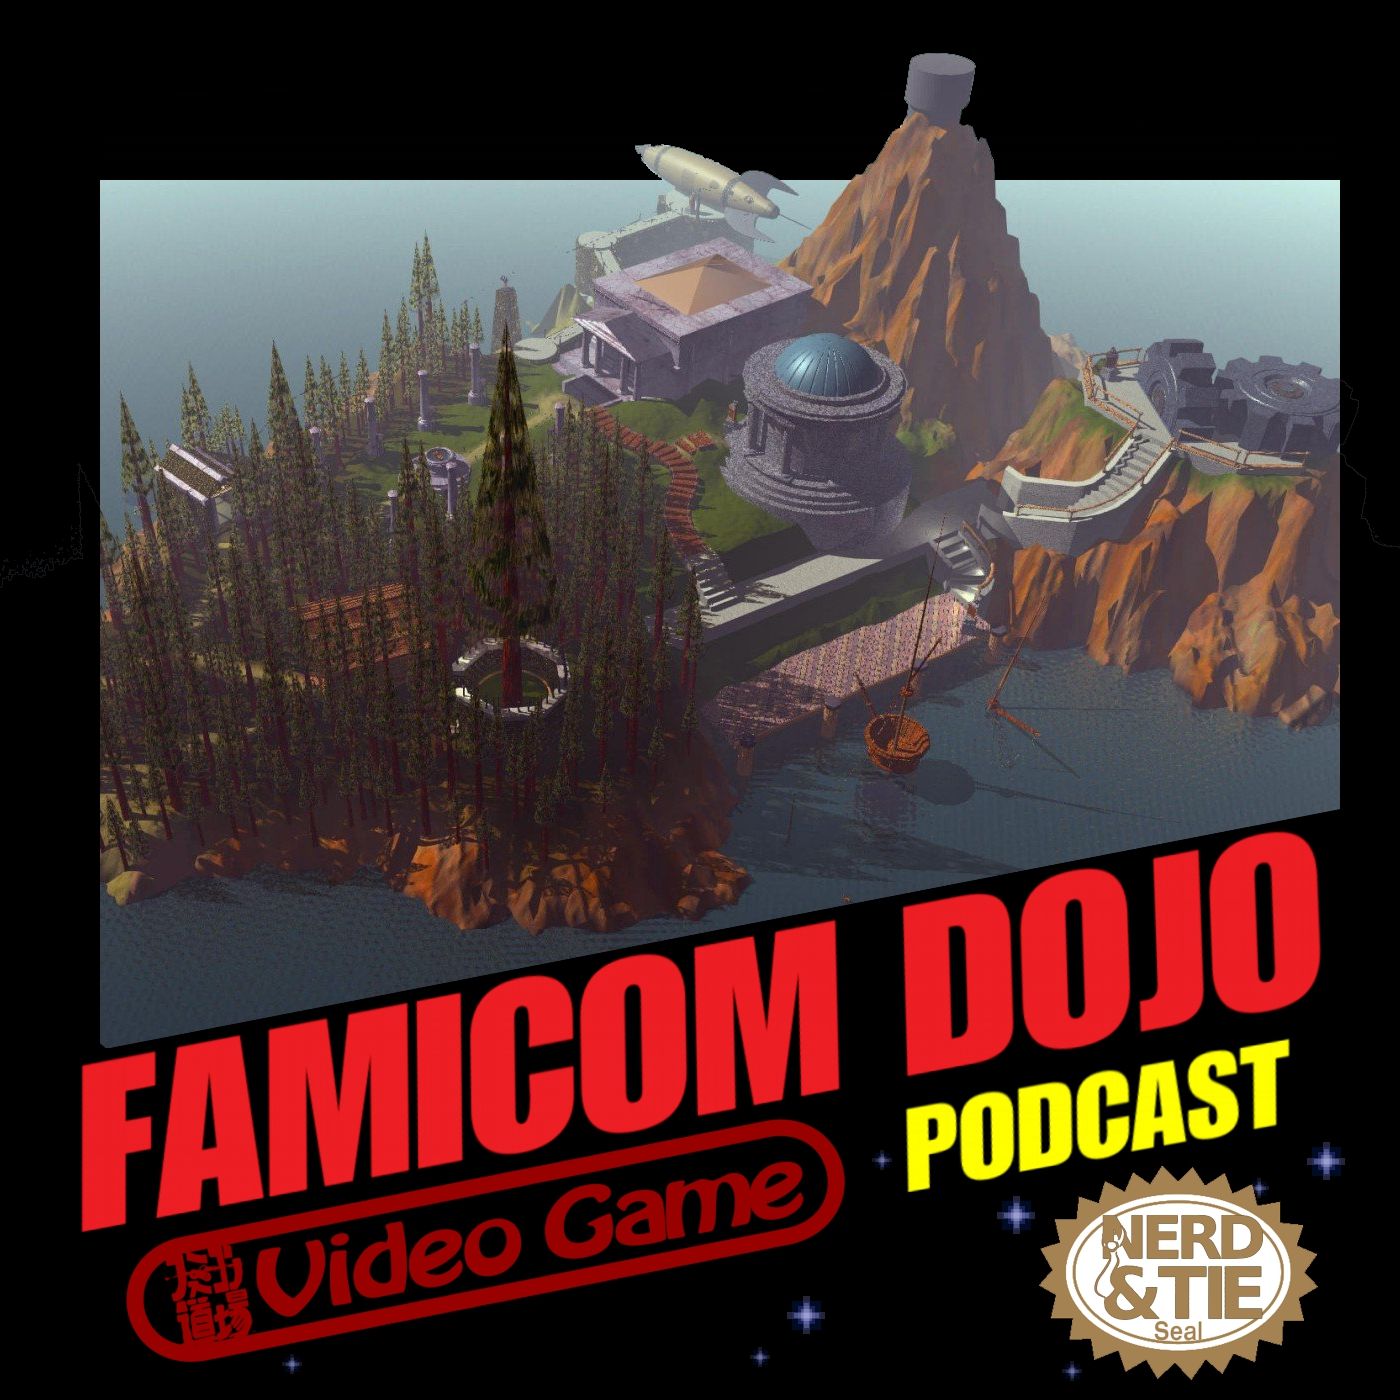 Famicom Dojo Podcast 167: Genres That Won't Be Myst